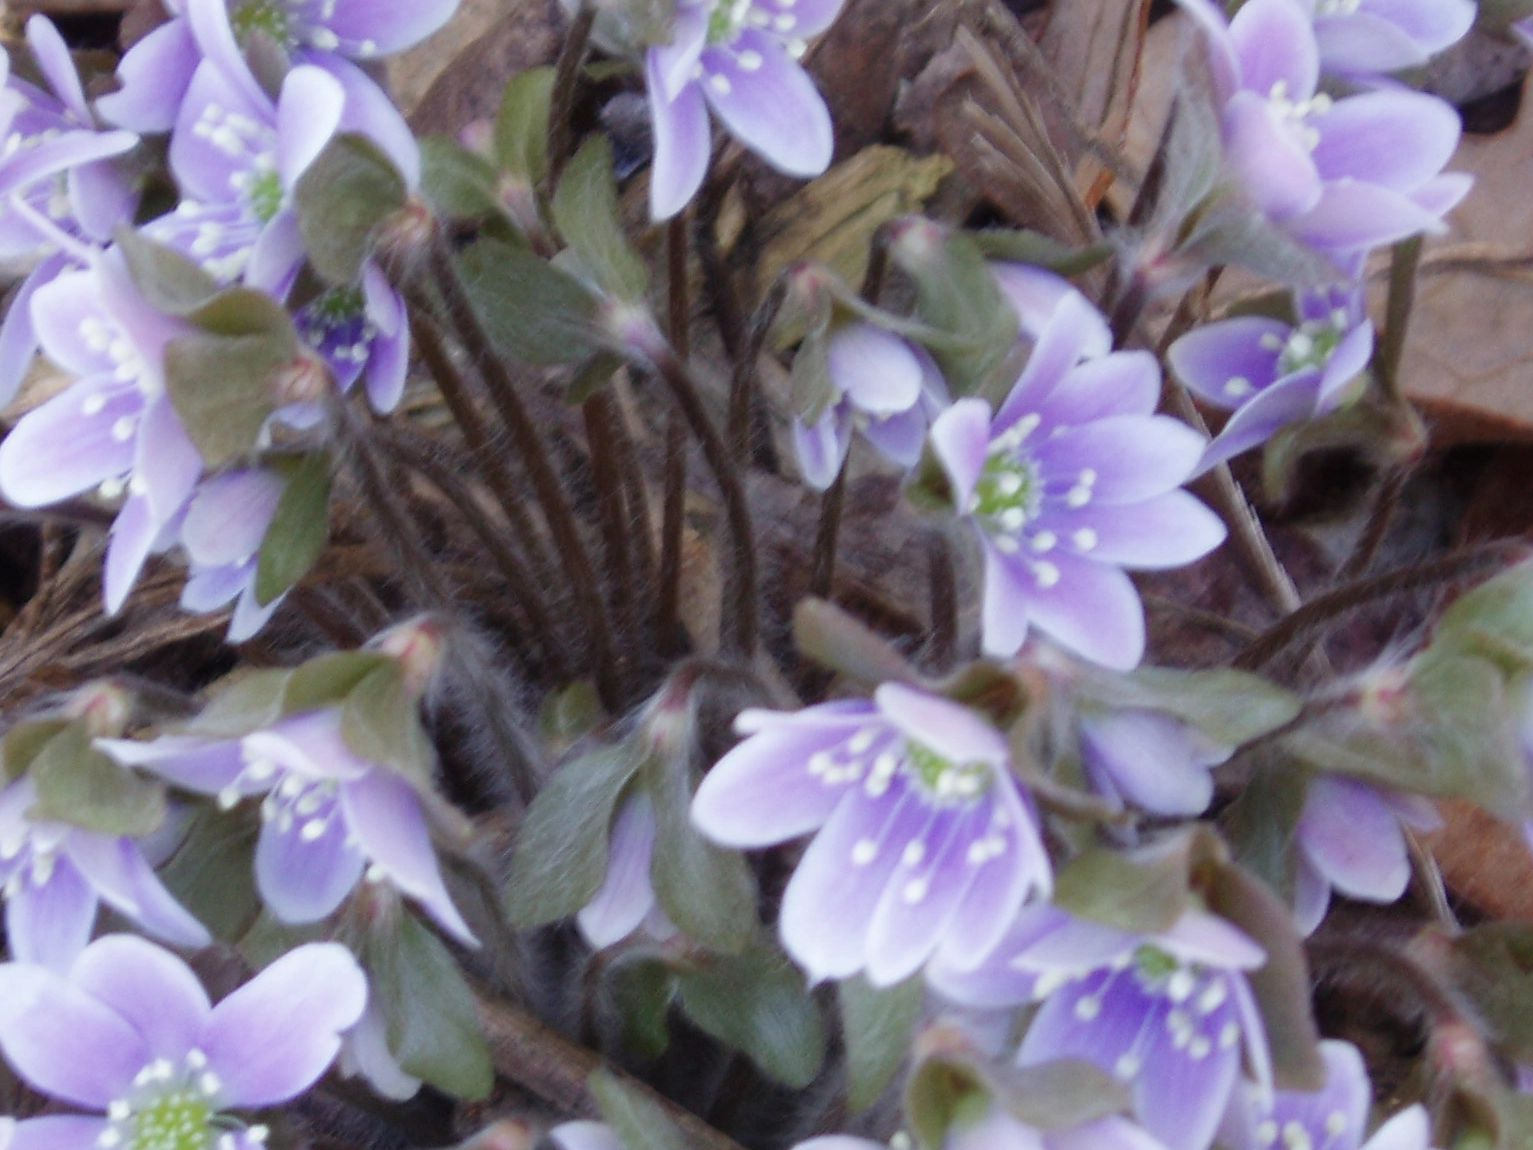 "{""blocks"":[{""key"":""dqfcu"",""text"":""Hepatica nobilis var.obtusa Round Lobed Hepatica  liver leaf - potted plants email john@easywildflowers.com"",""type"":""unstyled"",""depth"":0,""inlineStyleRanges"":[],""entityRanges"":[],""data"":{}}],""entityMap"":{}}"